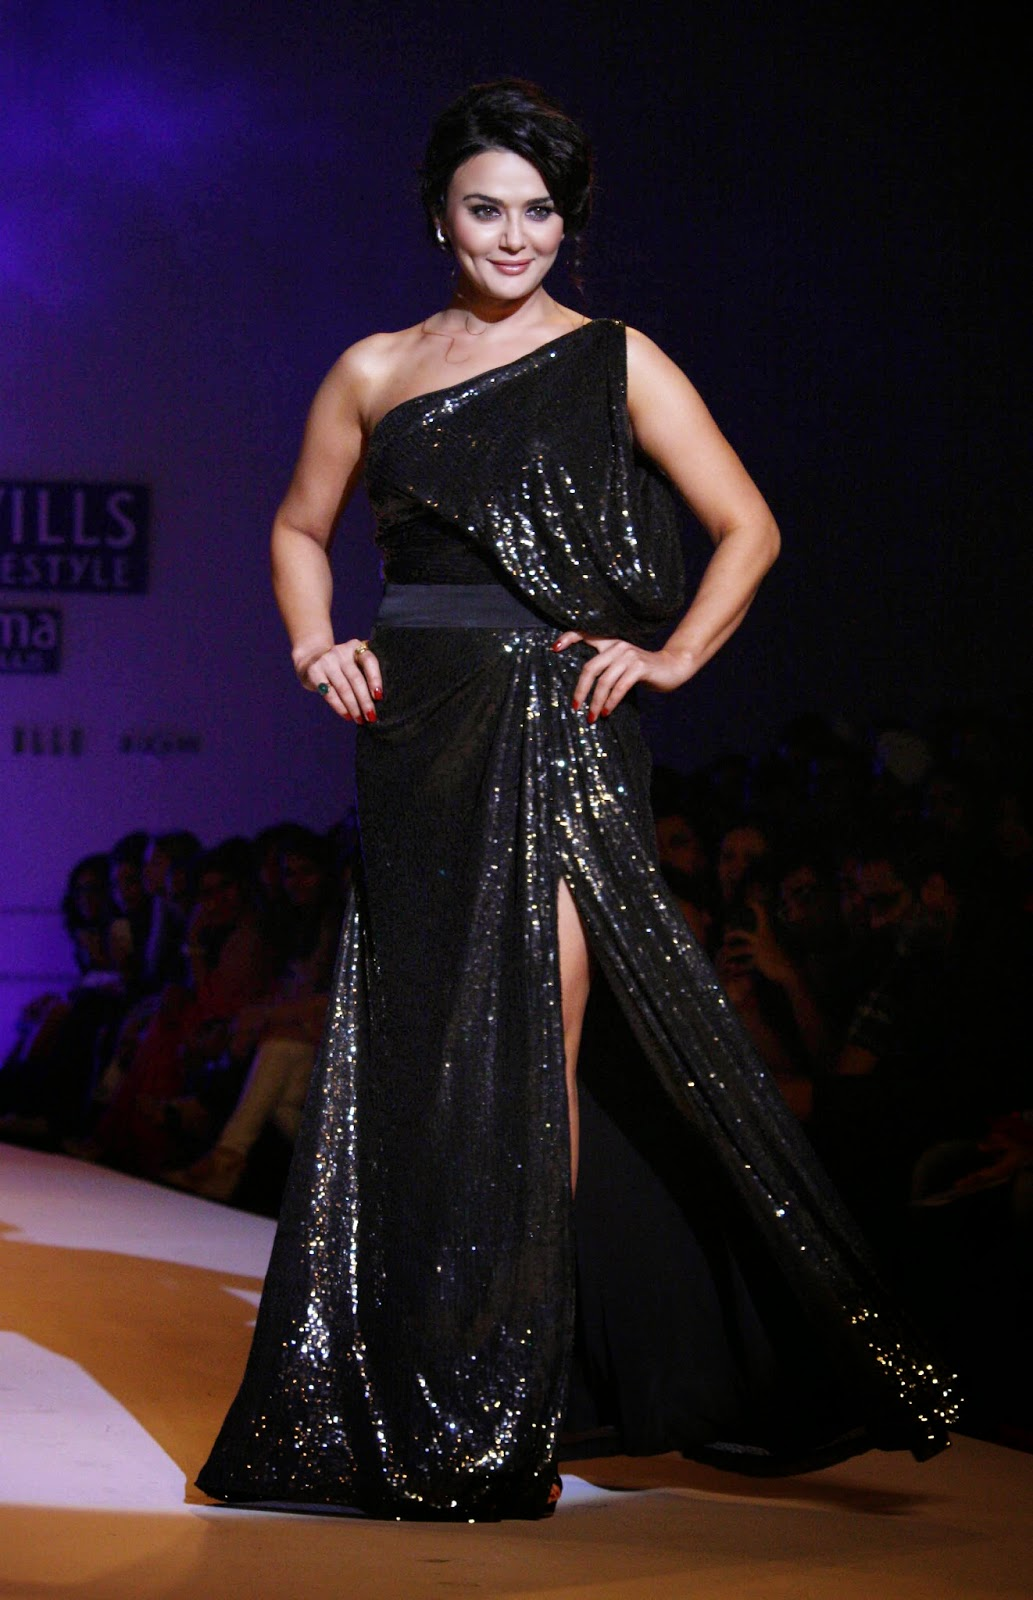 Preity zinta bollywood actress and ipl7 t20 kings xi punjab owner at the designer surily show at Wills lifestyle fashion week